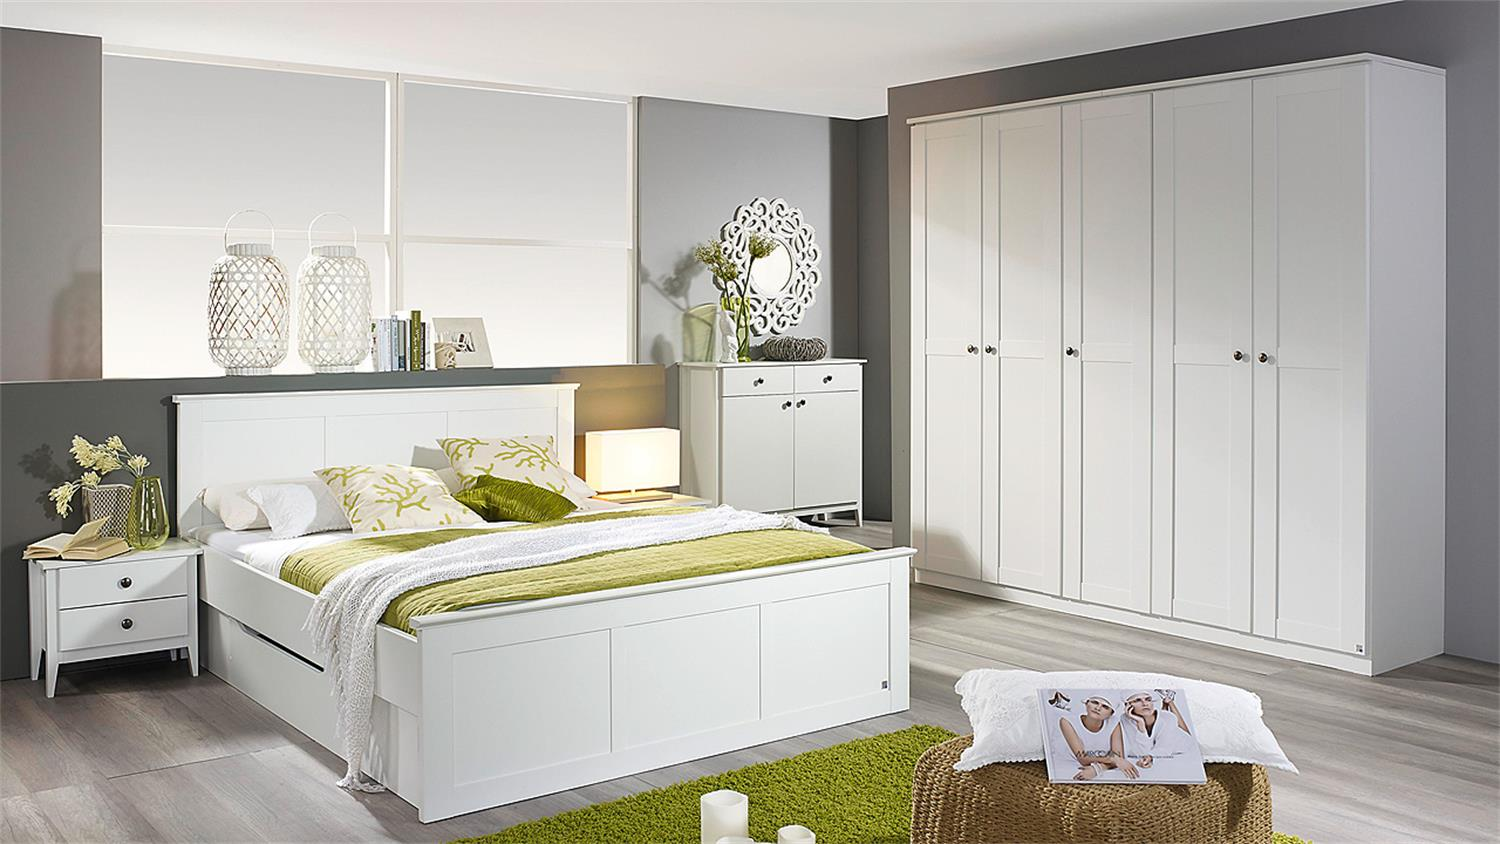 schlafzimmer 1 rosenheim bett schrank nachttisch in wei. Black Bedroom Furniture Sets. Home Design Ideas